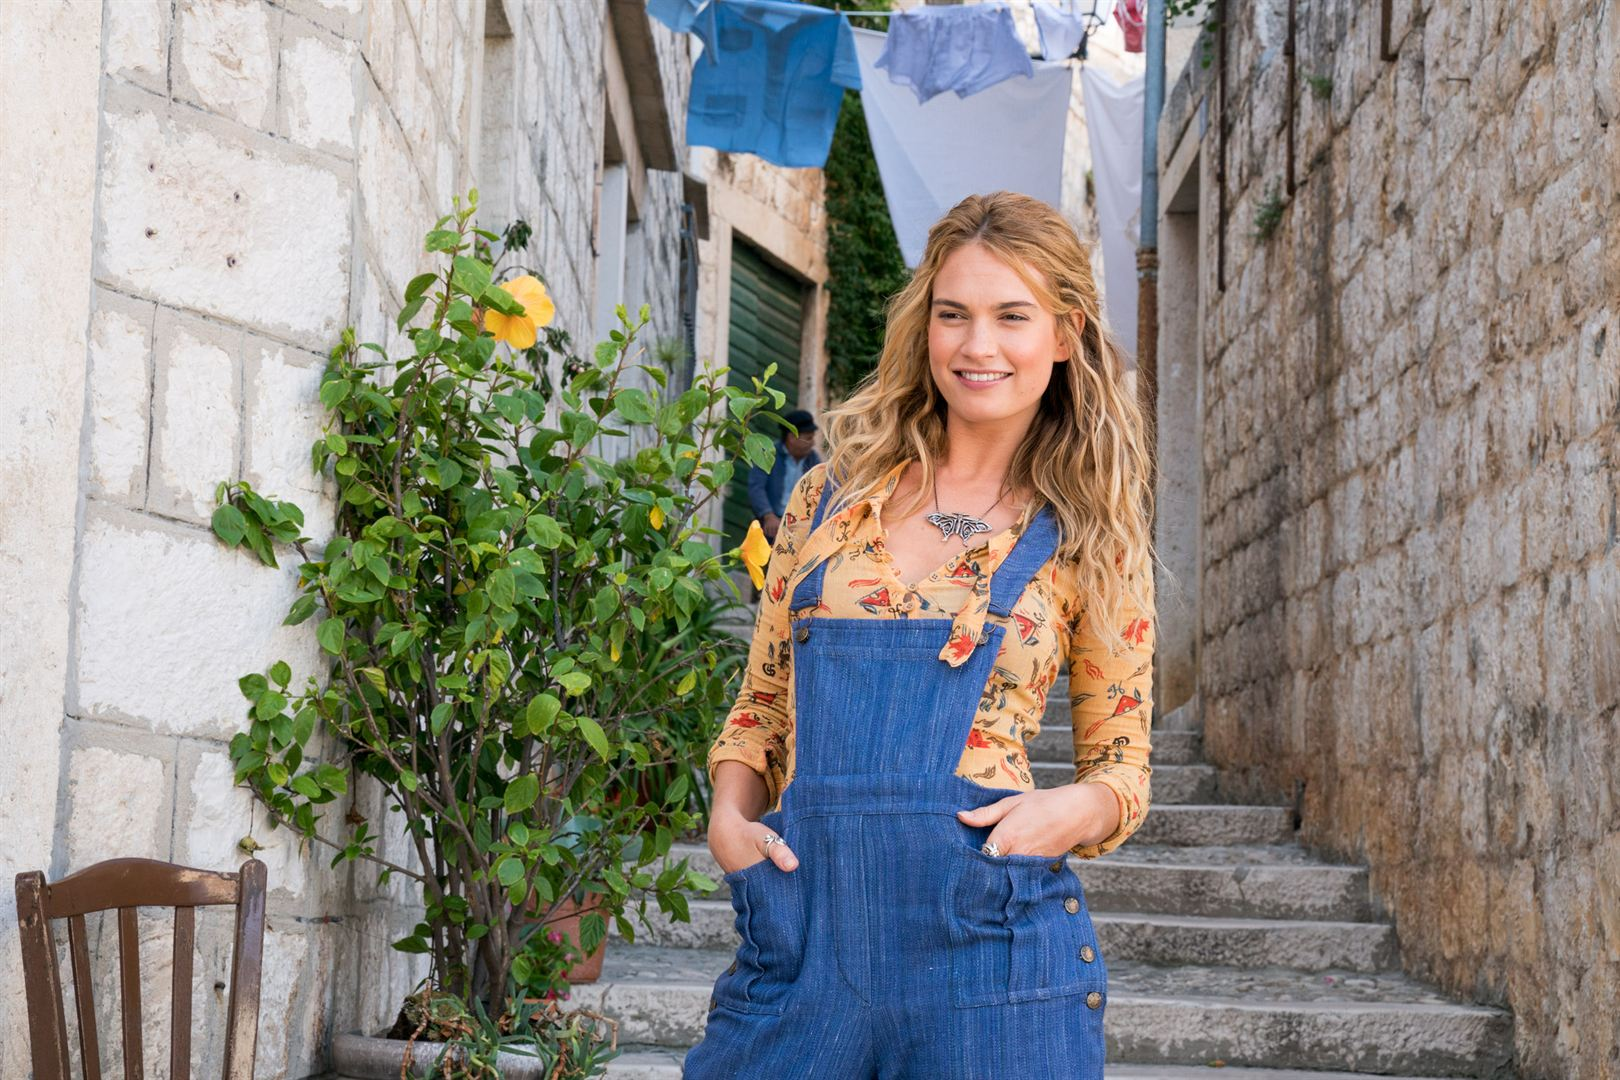 Mamma Mia! 2 on Netflix: why was Meryl Streep reluctant for this sequel? - CineSeries